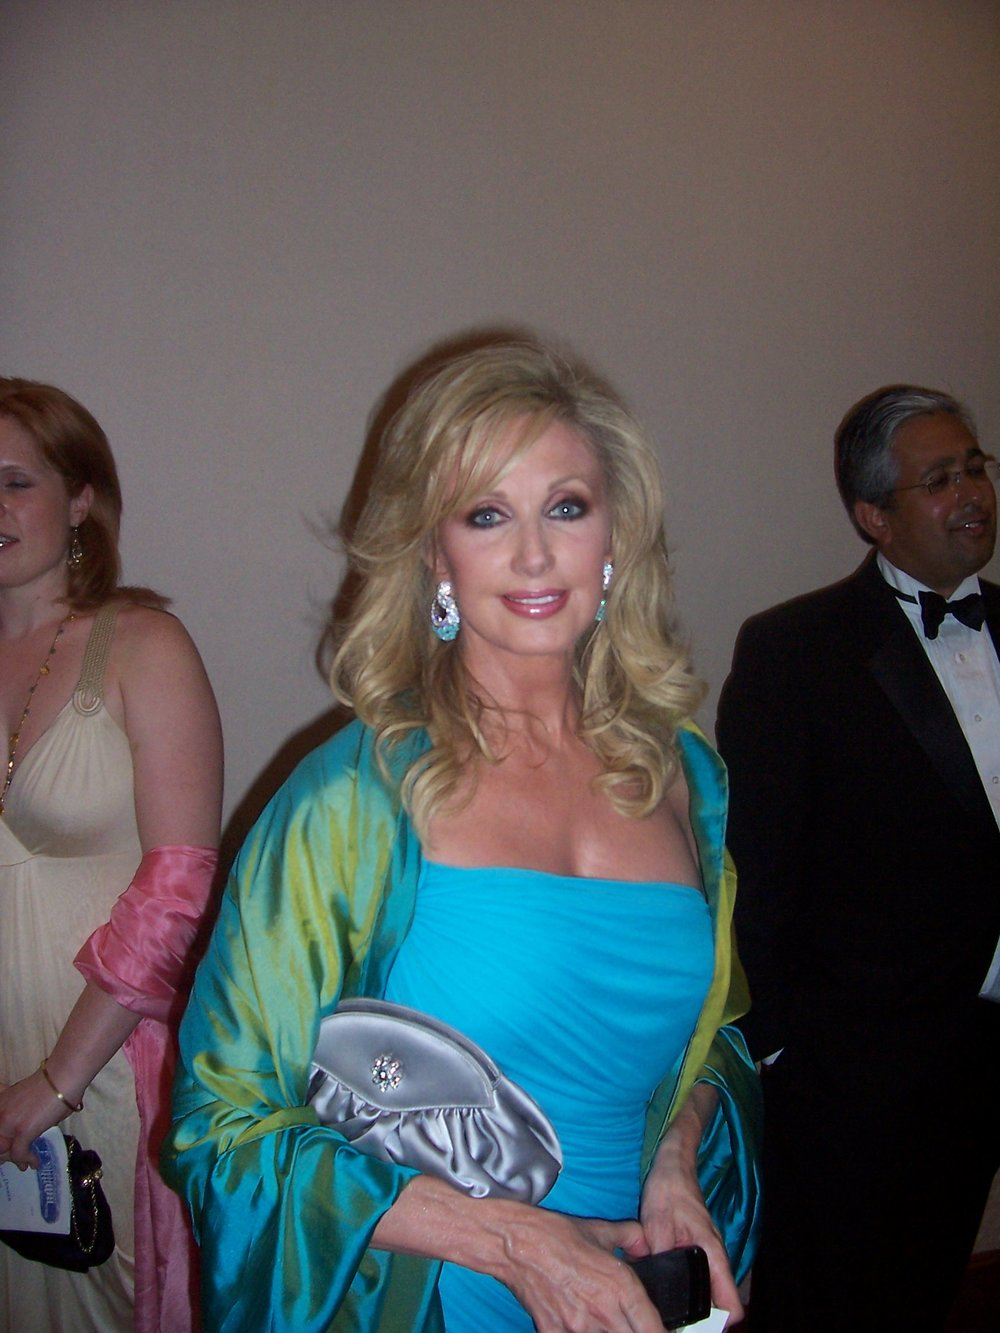 MISS MORGAN FAIRCHILD